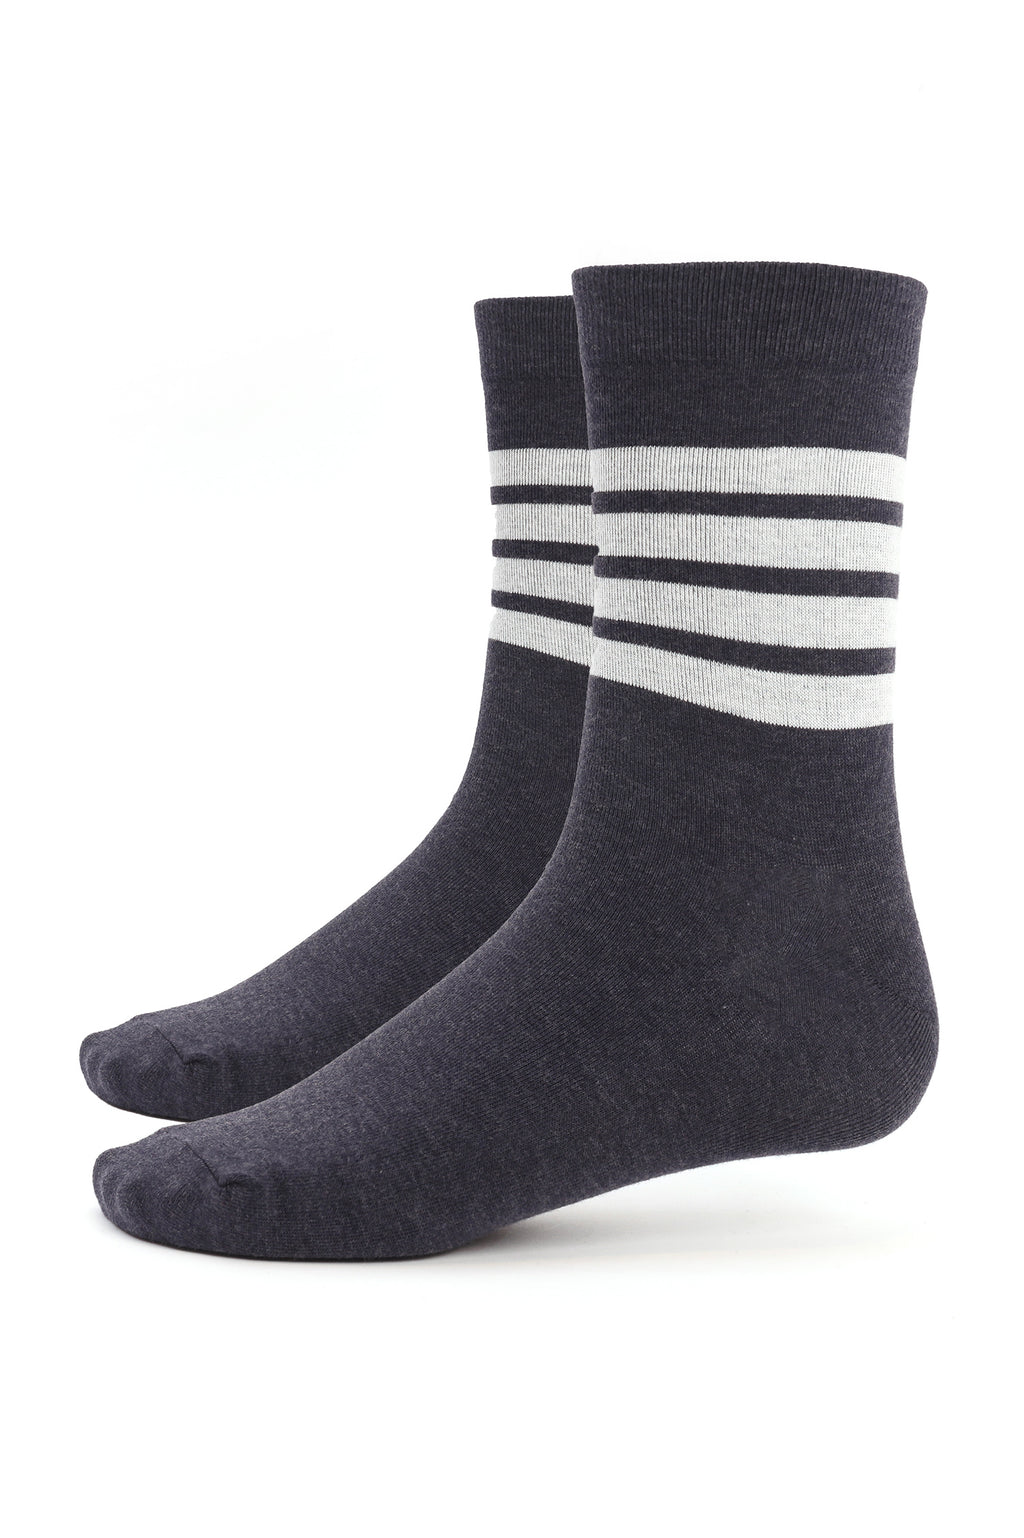 LITE SOCKS -GREY-WHITE